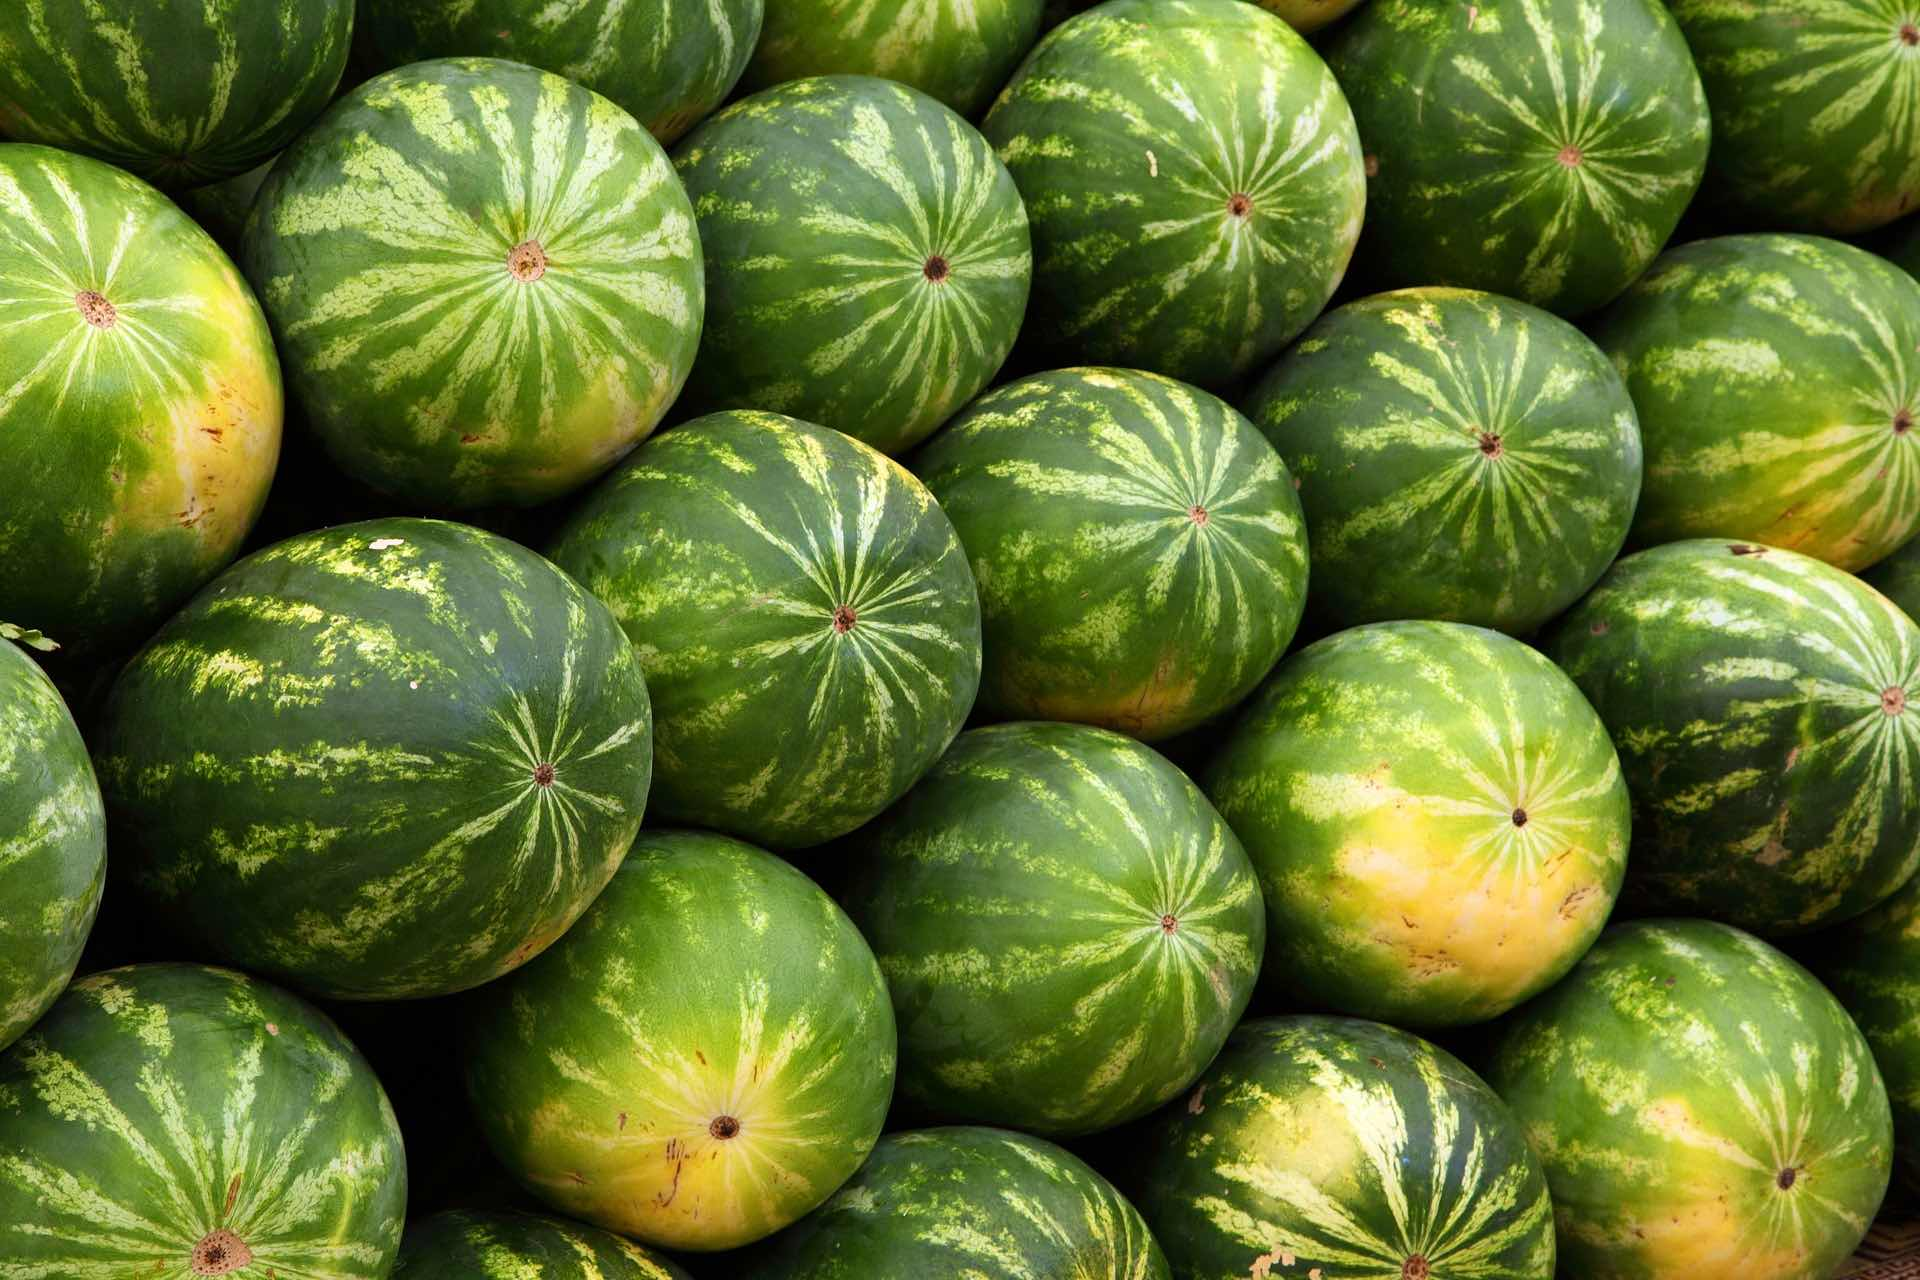 watermelons-2636_1920